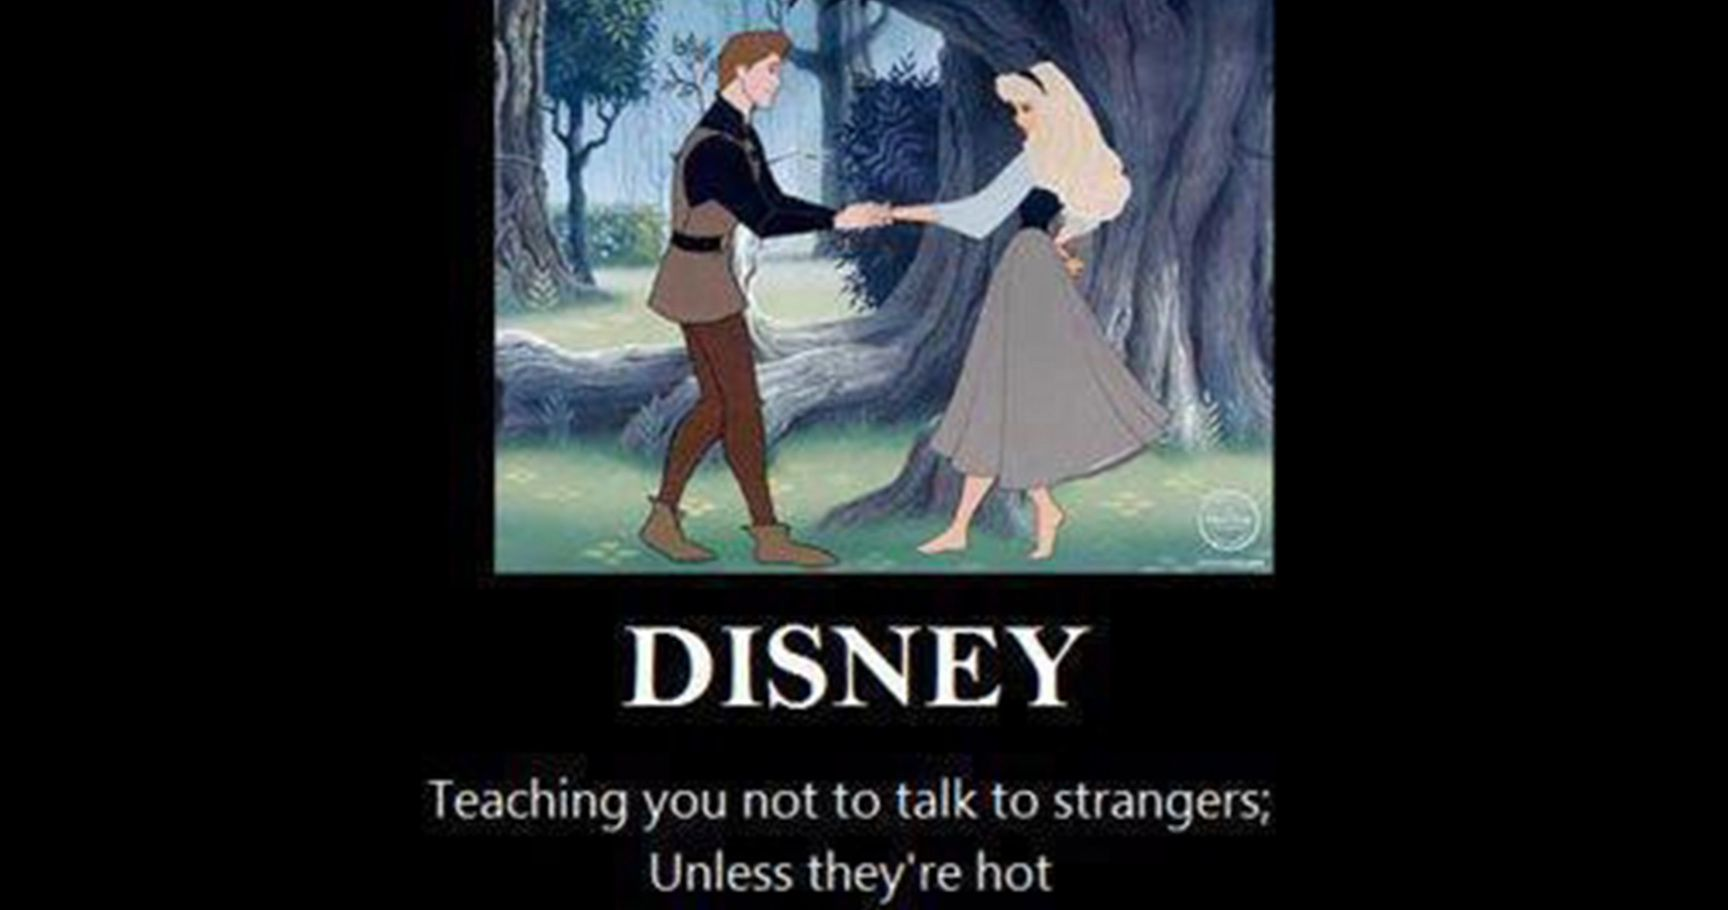 15 Times Disney Was Just Plain Wrong